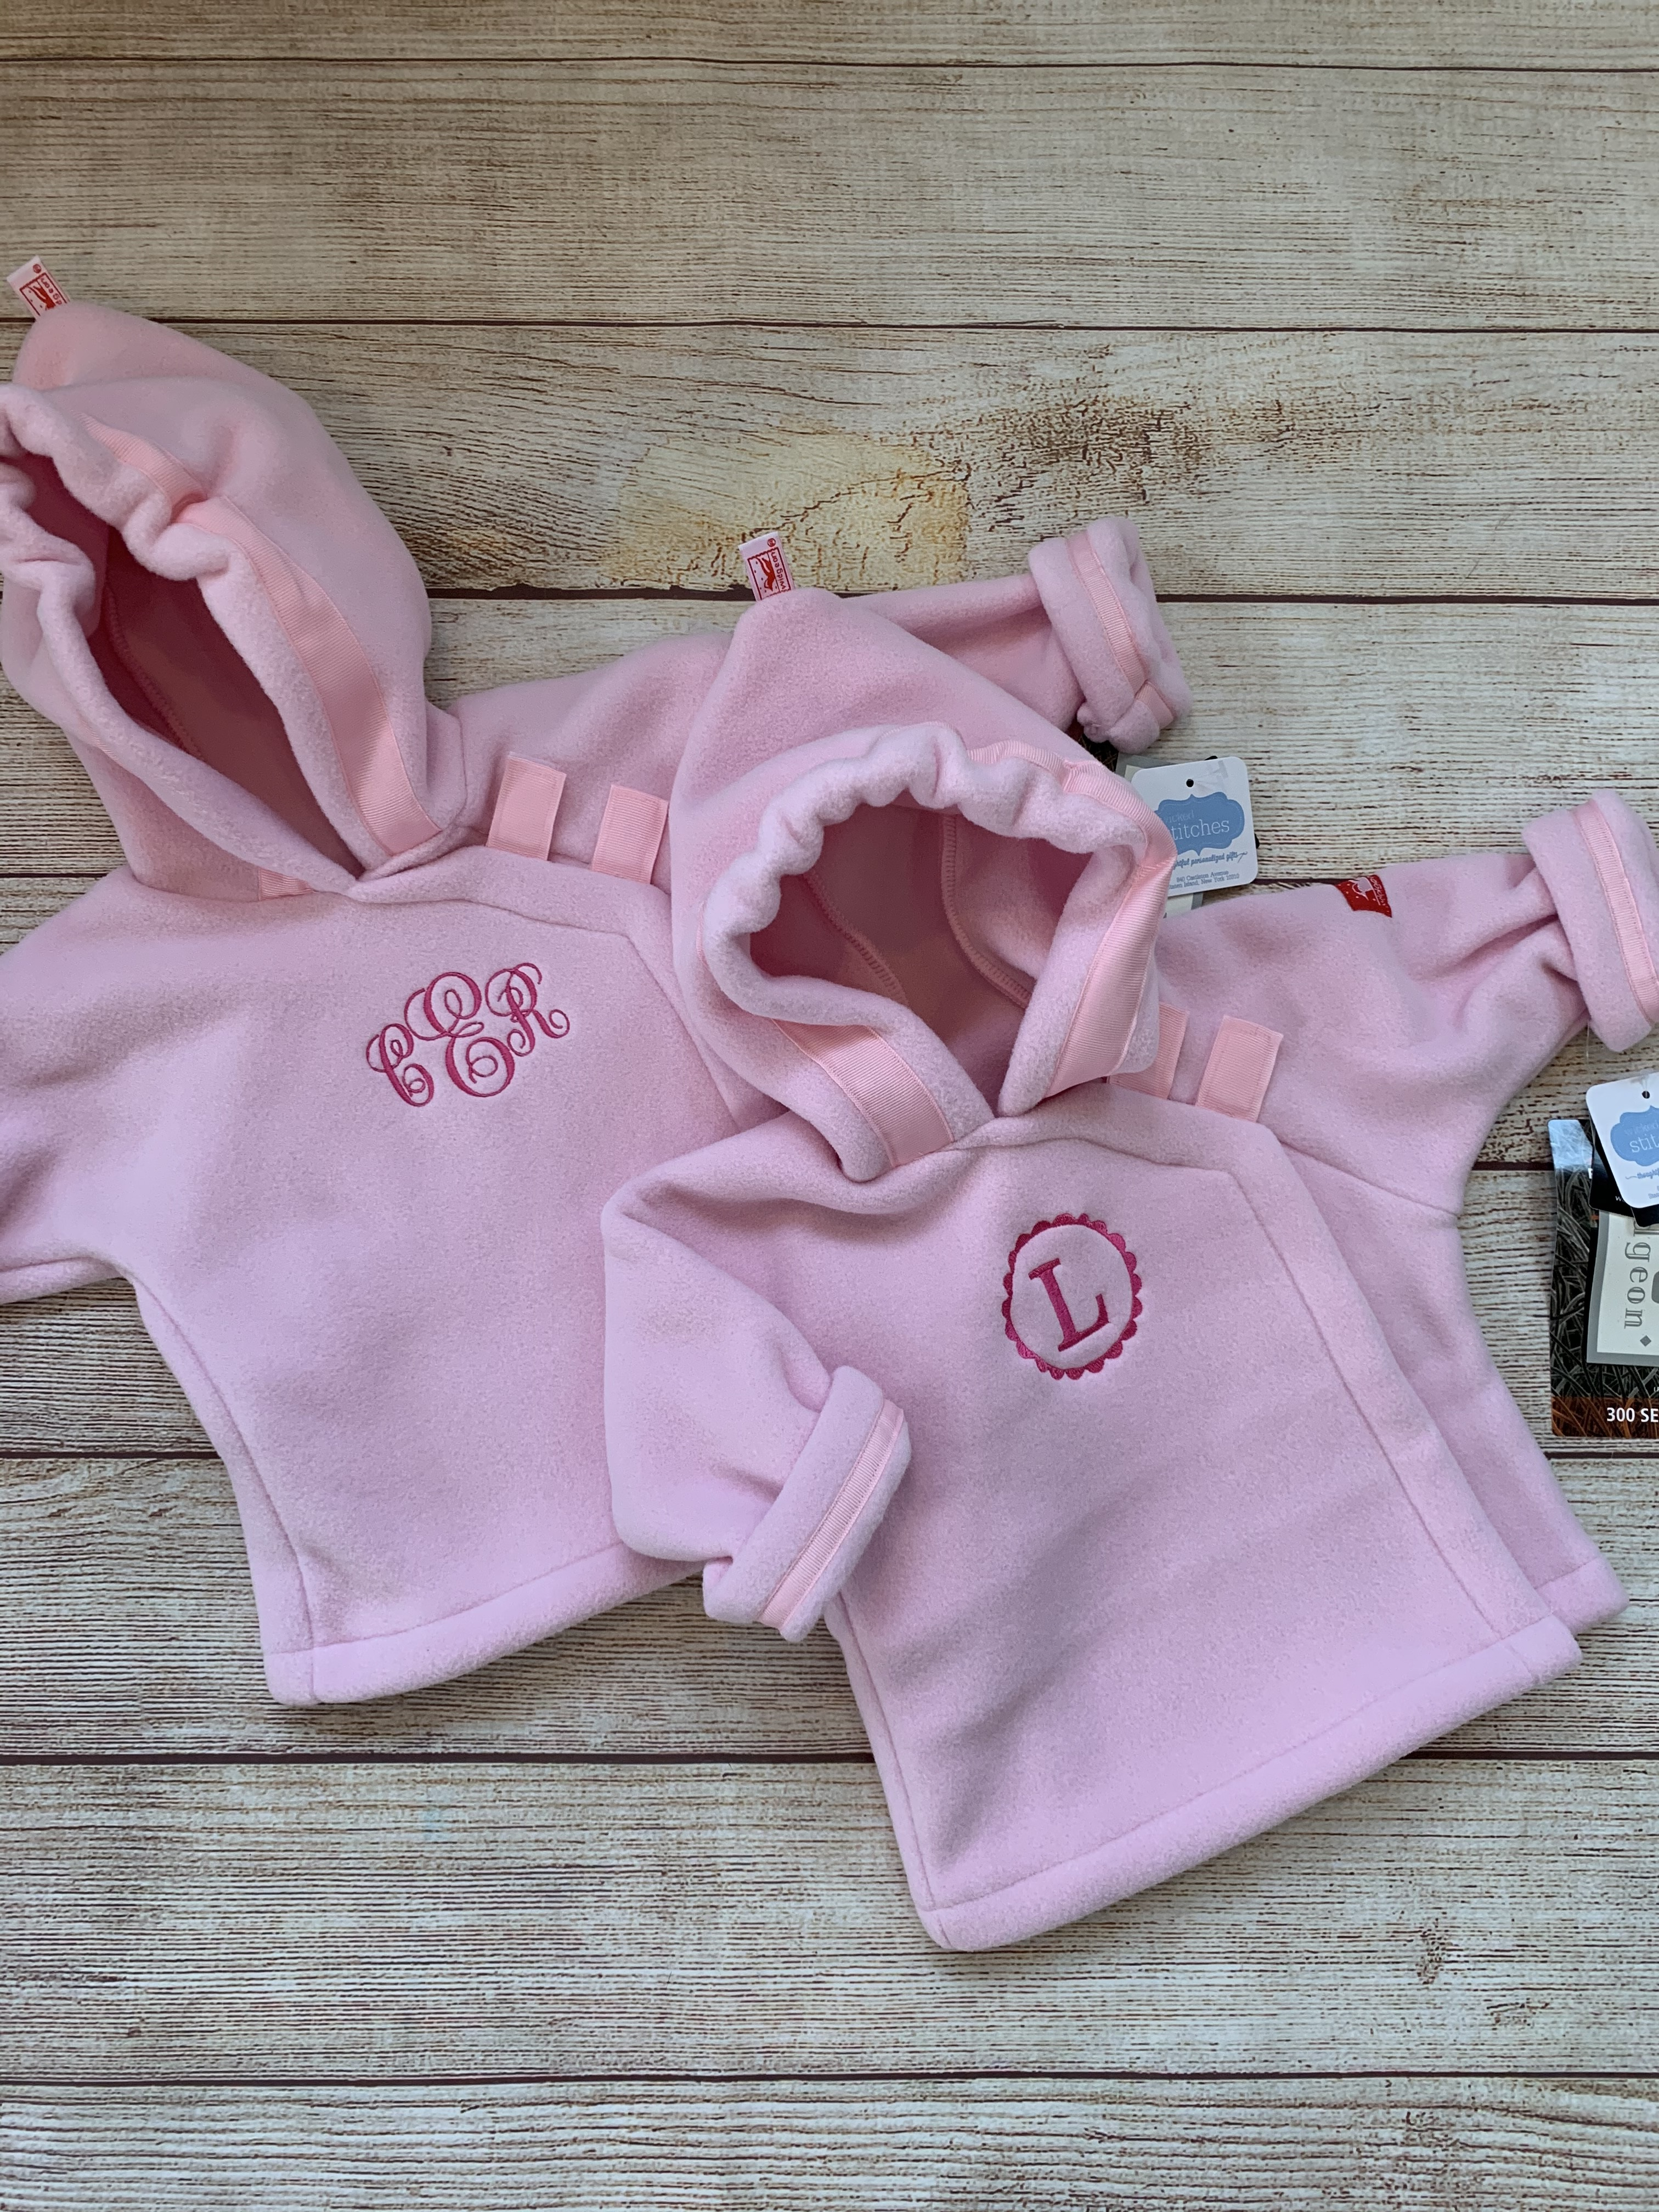 In the pink, warm and cozy. Expertly monogrammed by Wicked Stitches Gifts